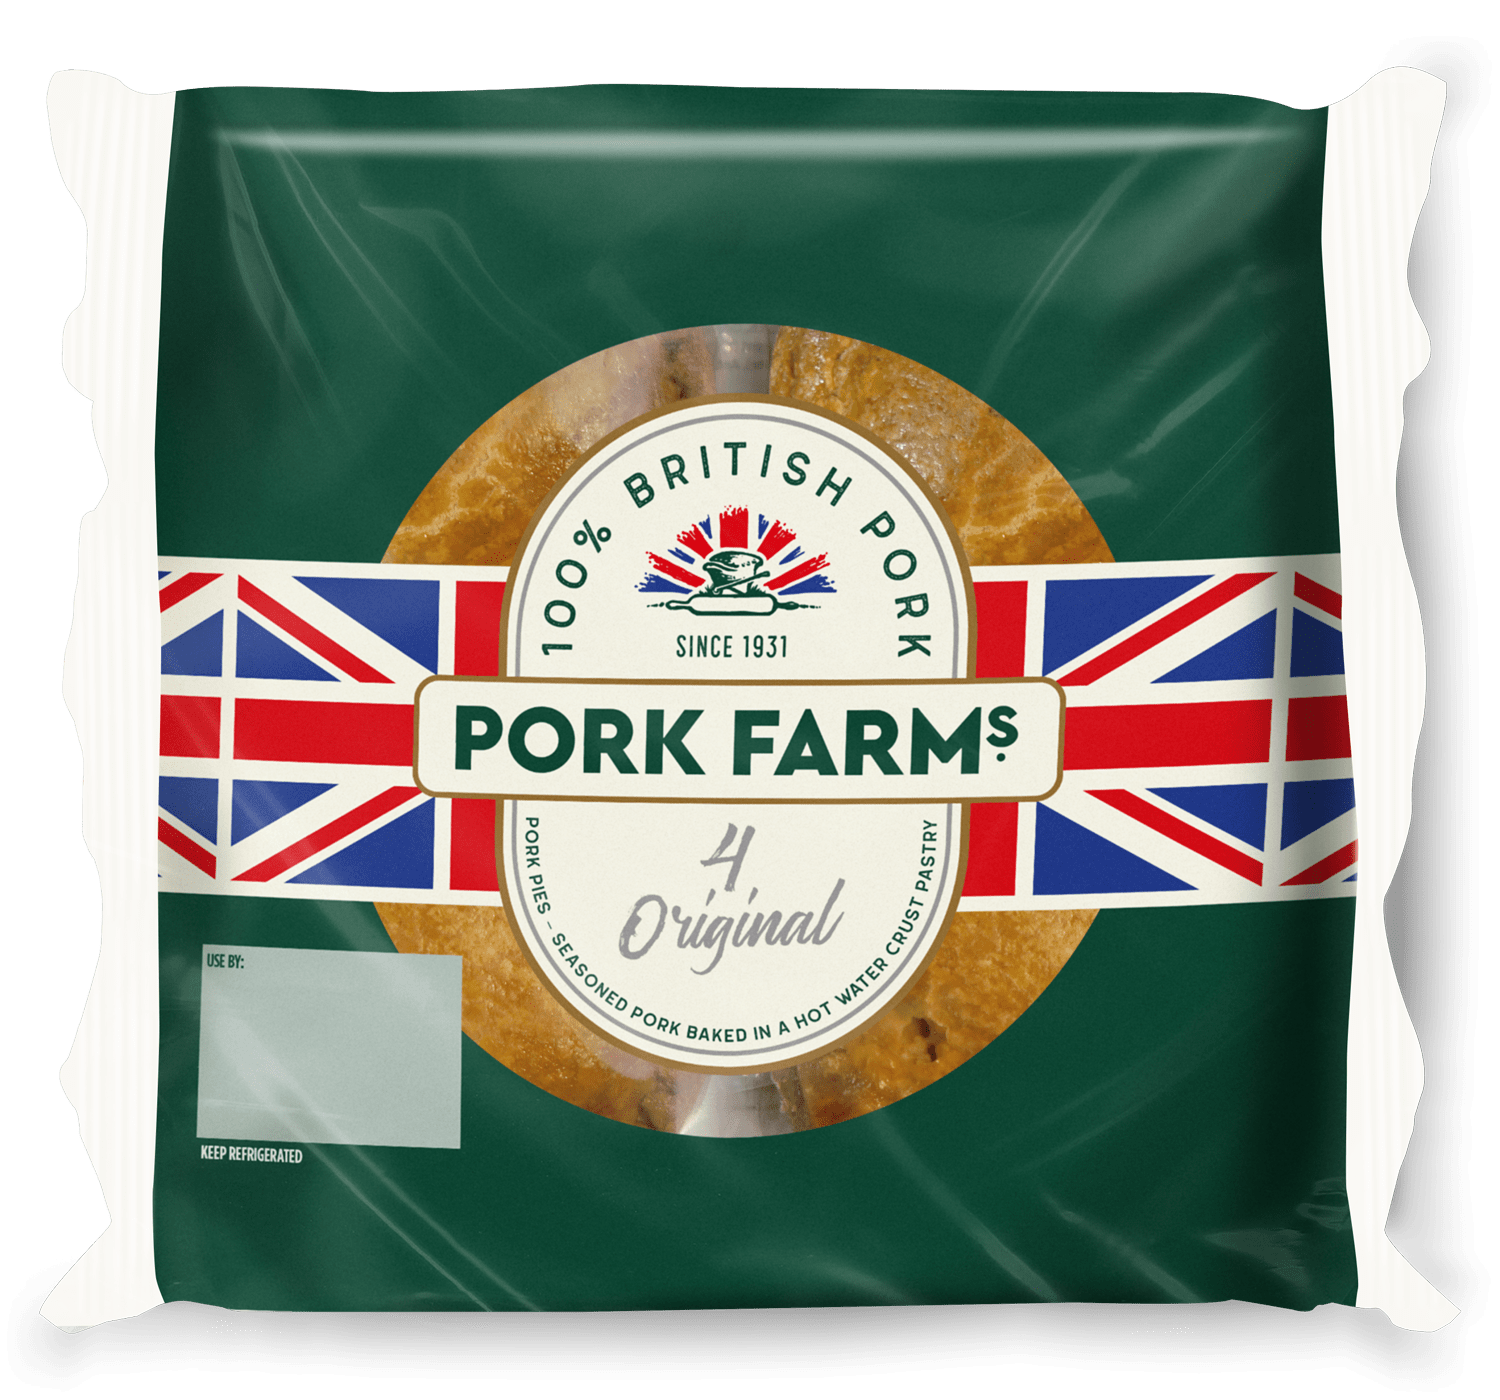 Pork farms category